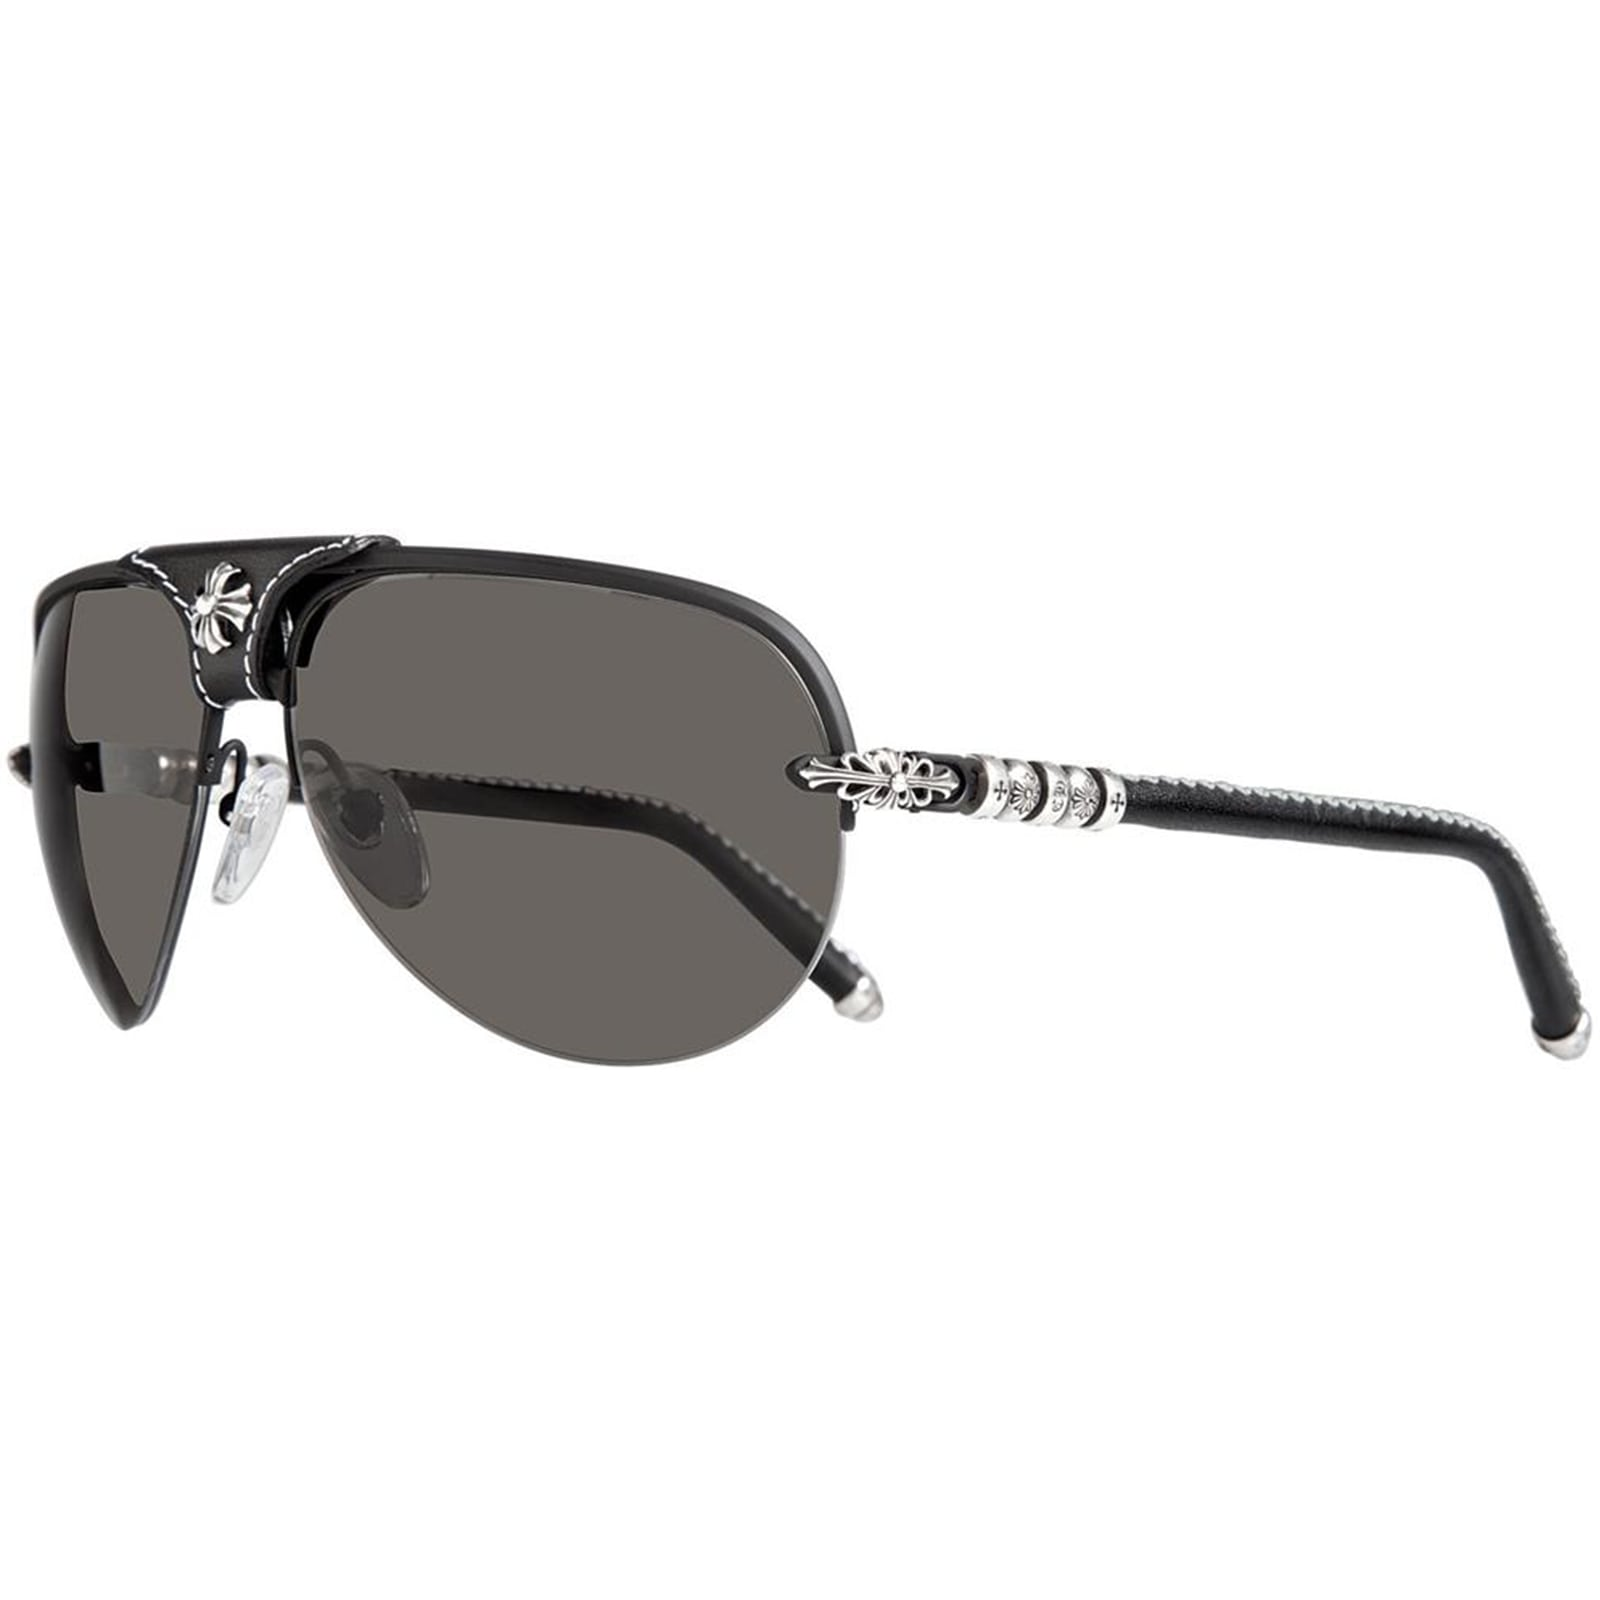 d8968b41548f The History of Chrome Hearts. Home   Designer Eyewear ...